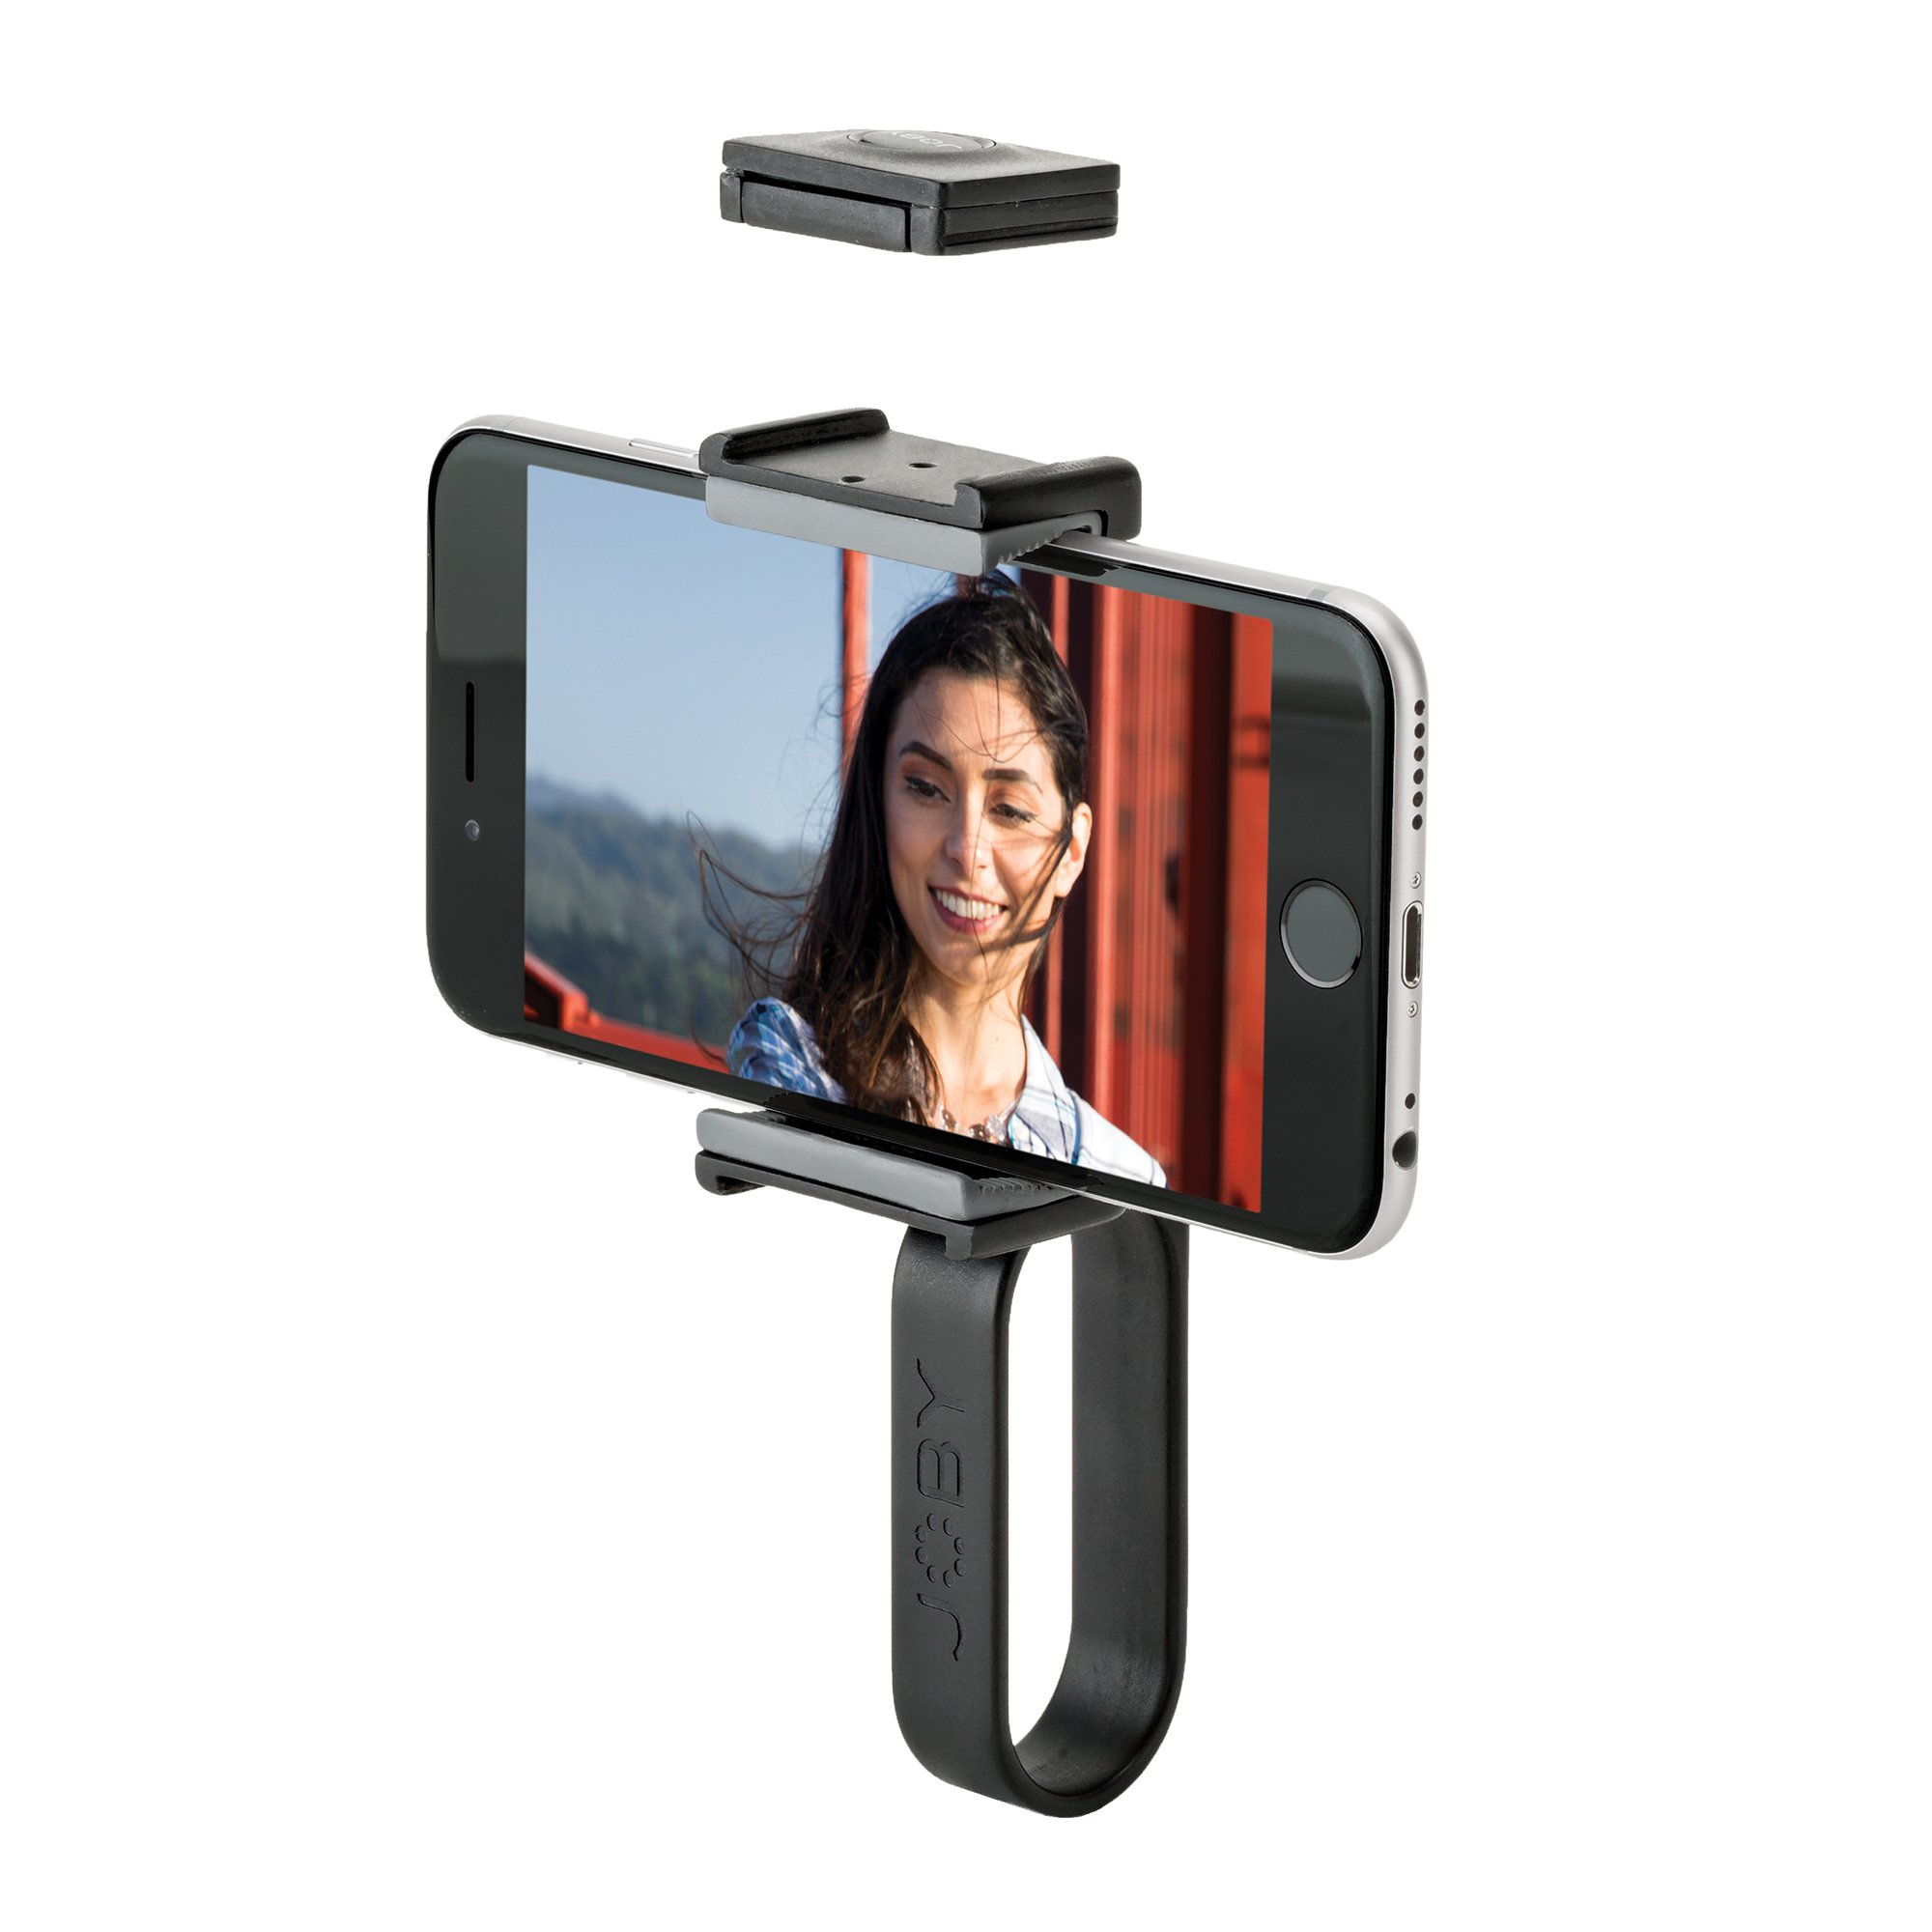 JOBY GripTight POV Kit- Image Stabilizer w/Bluetooth Remote for Apple/Android Smartphones.